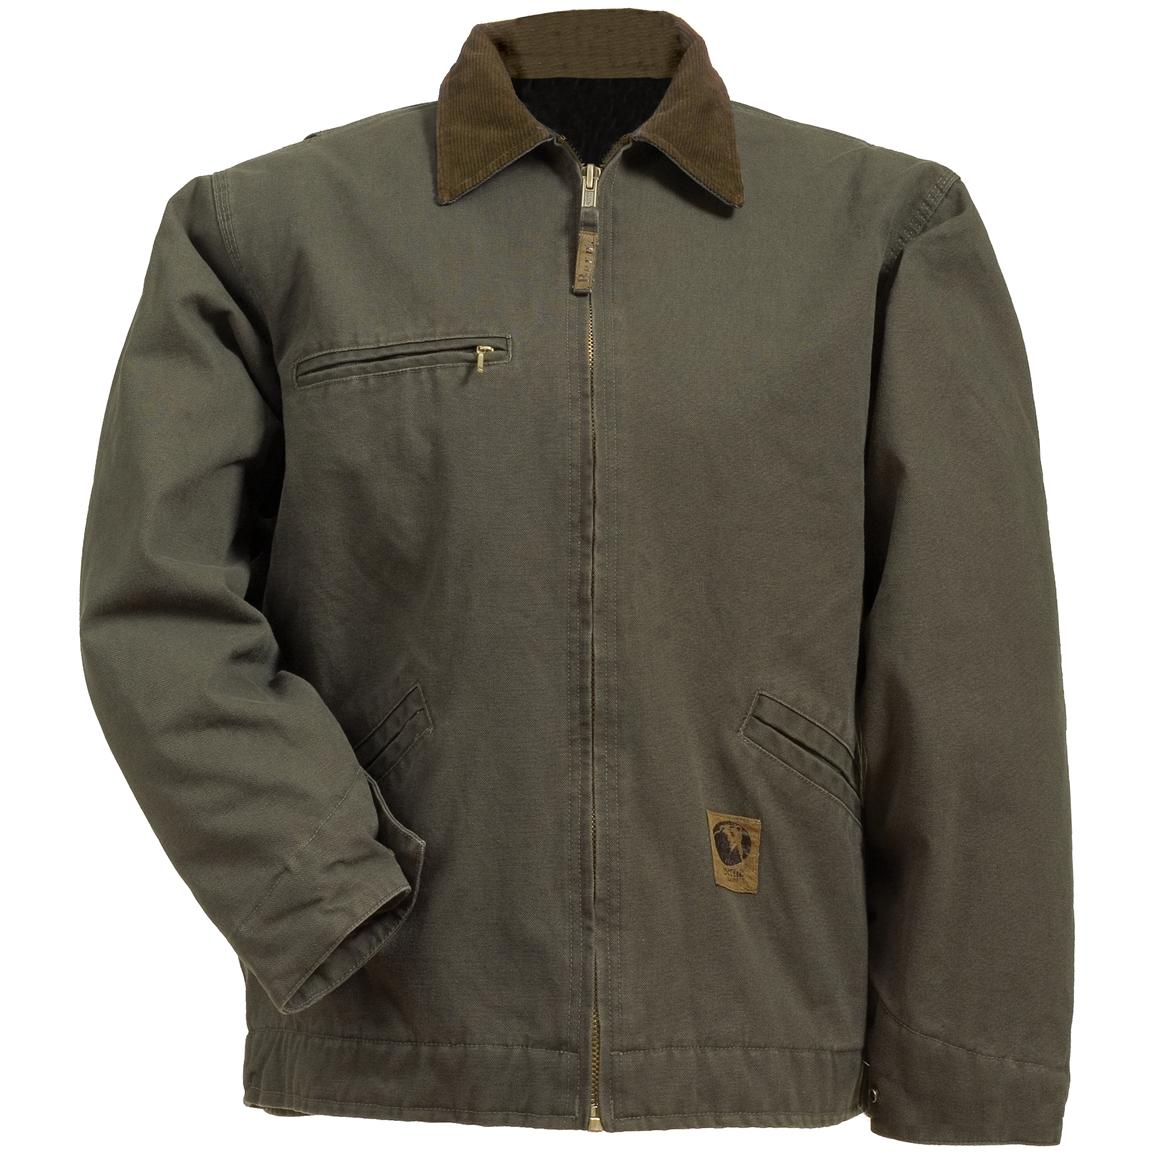 Berne Apparel® Fleece Lined Washed Gasoline Jacket, Olive